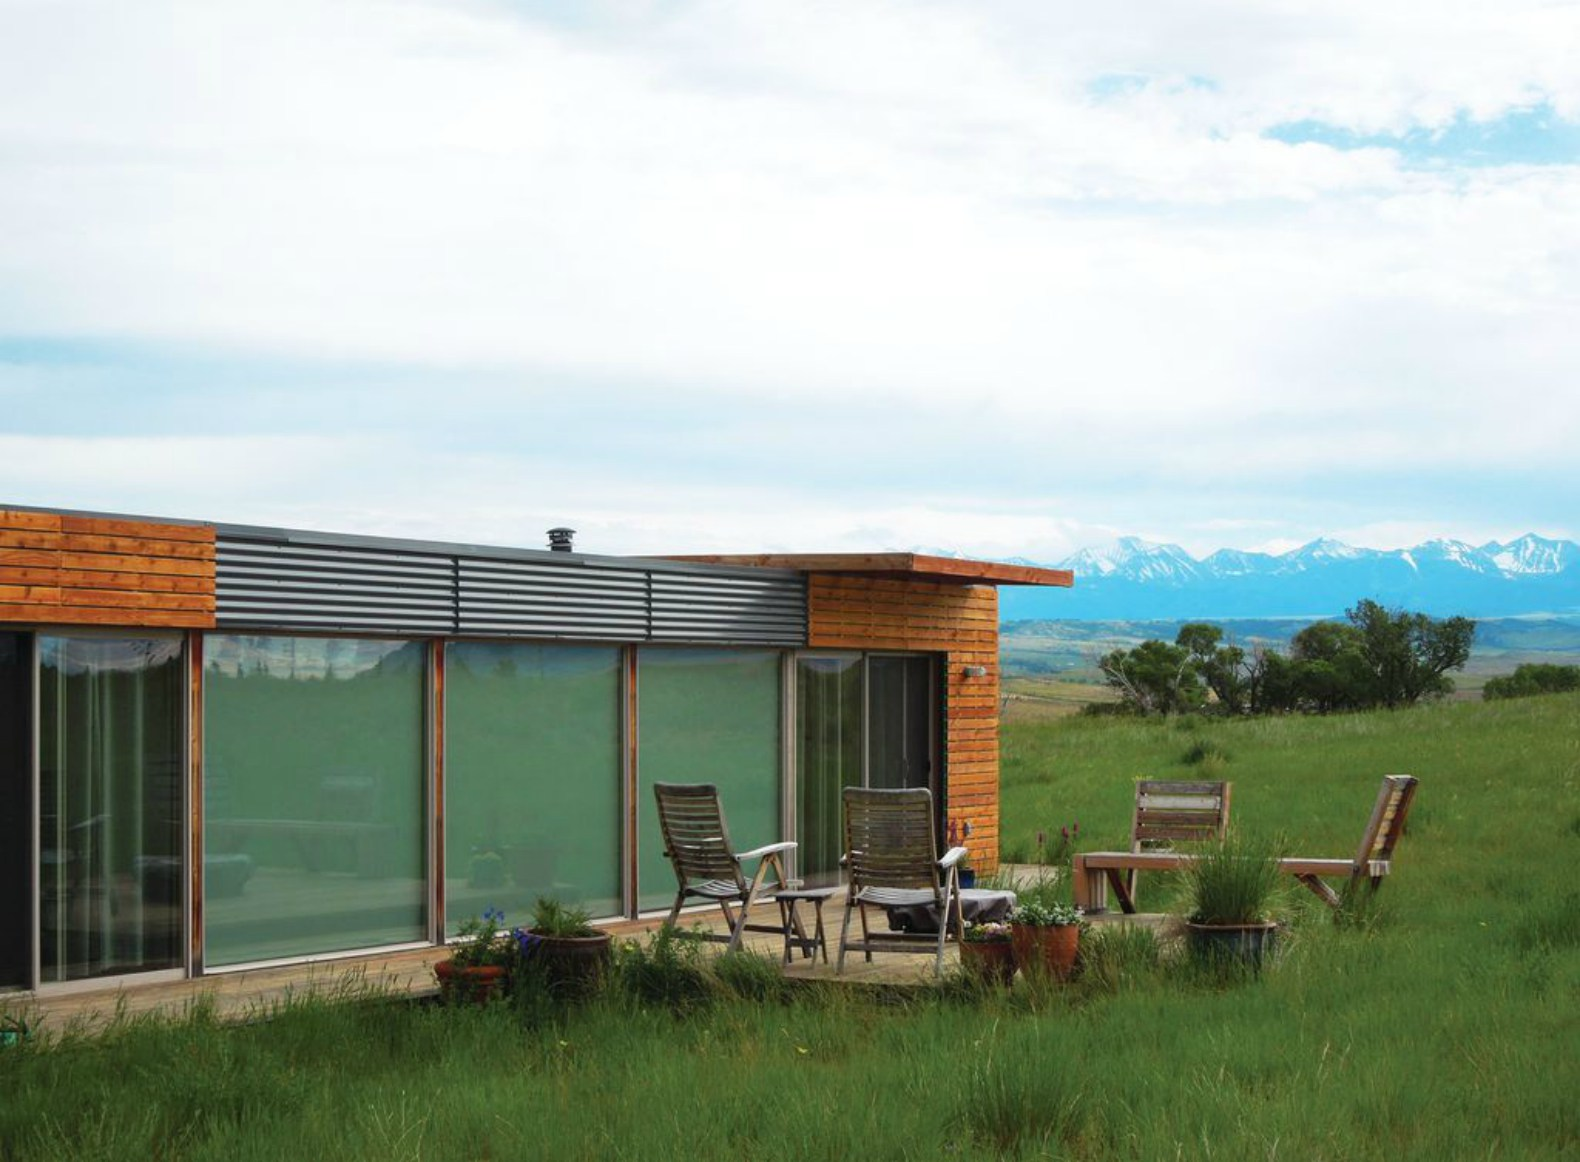 Tiny Home Designs: Stunning Shipping Container Home With All-glass Wall Can